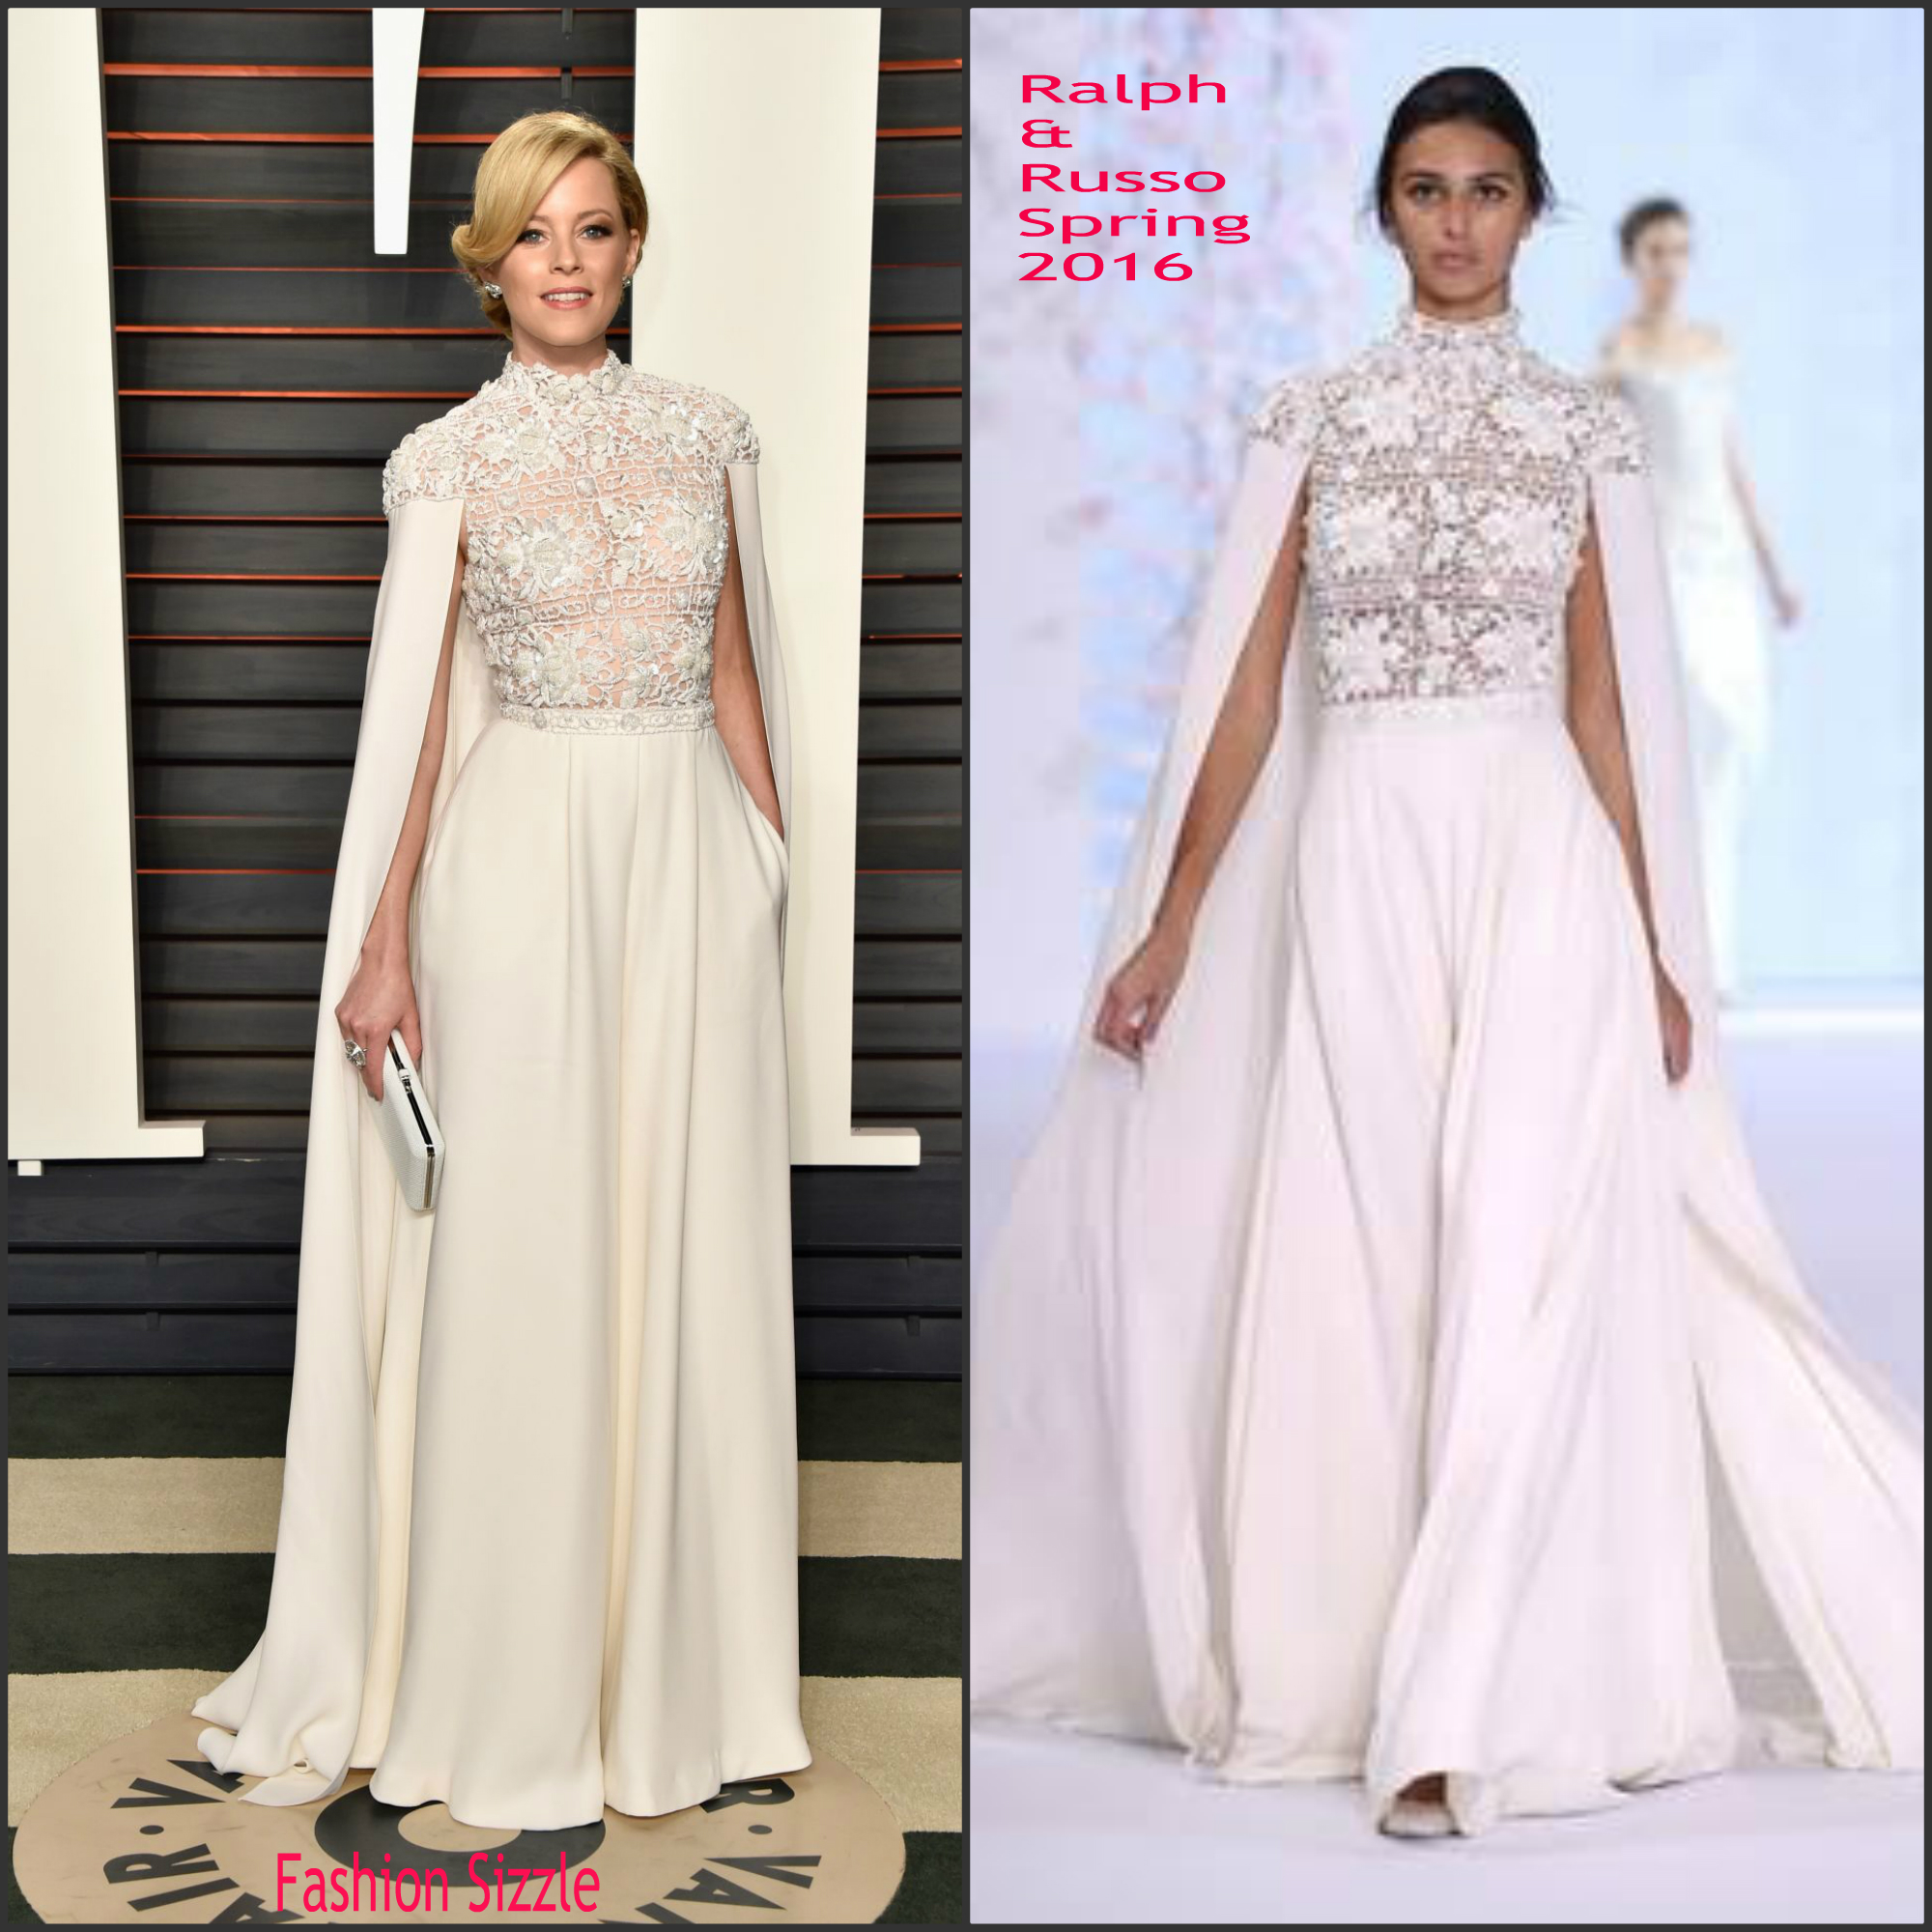 elizabeth-banks-in-ralph-russo-couture-2016-vanity-fair-oscar-party-1